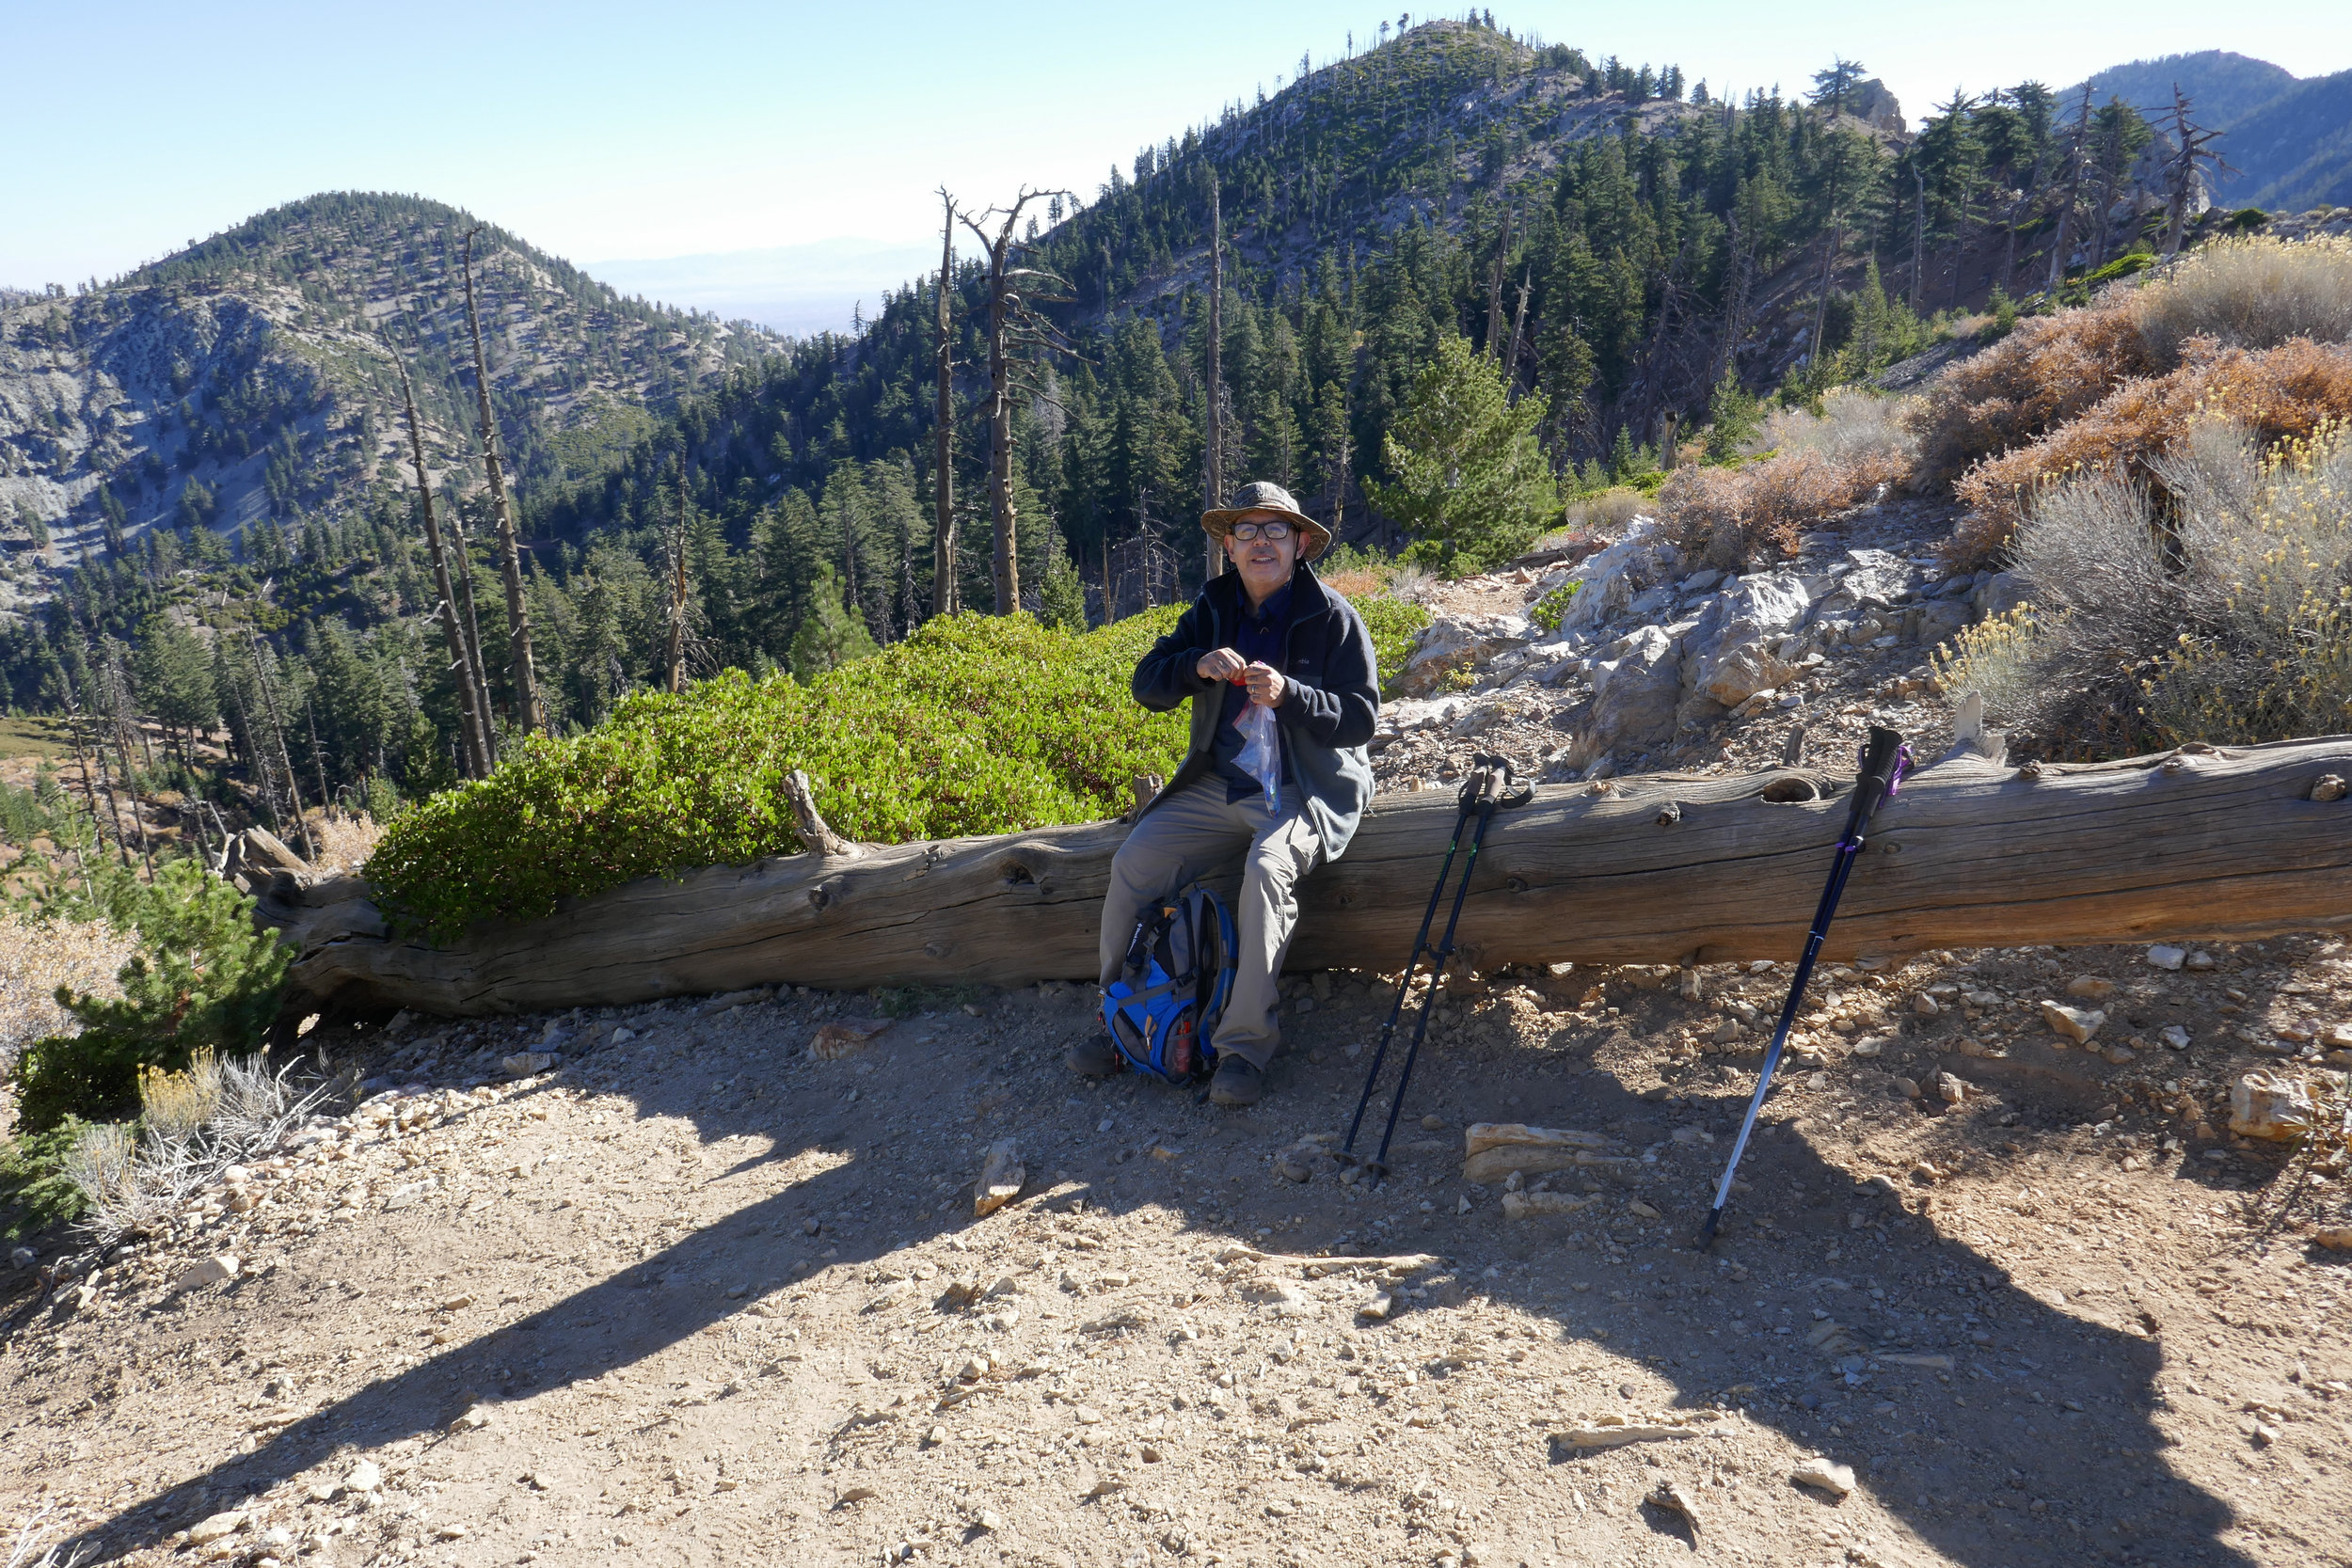 Taking a little break here. Behind my husband from left to right Timber Mountain, Big Horn Peak and Cucamonga Peak.